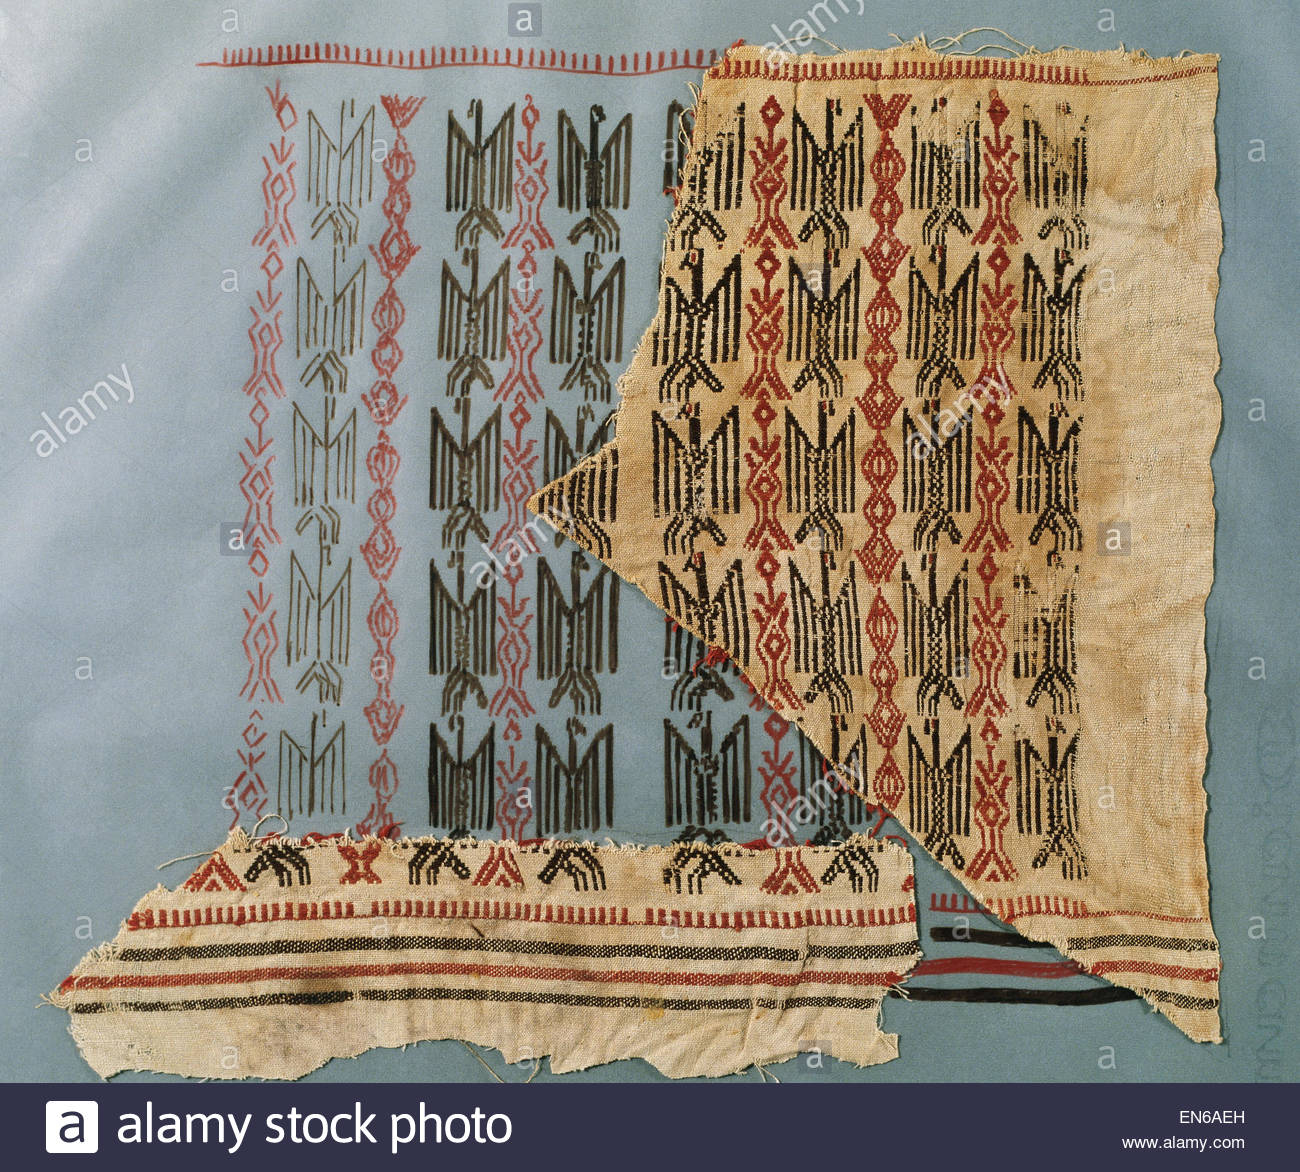 Textile. Hispano-Arabic. Piece of tissue with eagles. 12th-13th century. Linen and silk. From Collegiate of St. - Stock Image